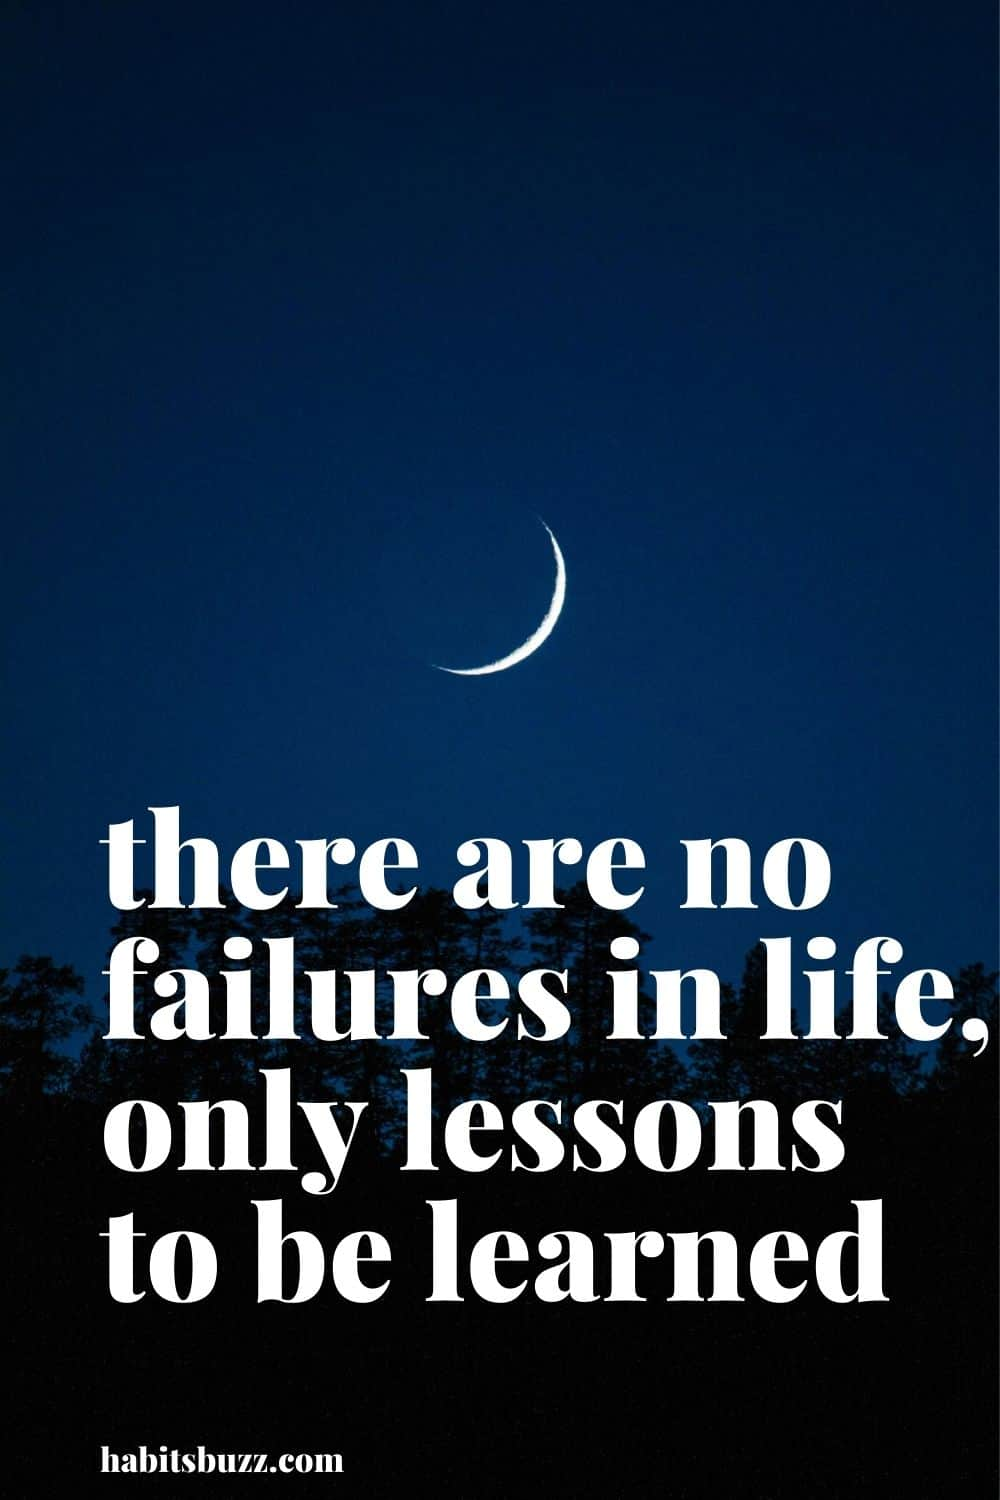 there are no failures in life, only lessons to be learned - mantras to get through bad days in life